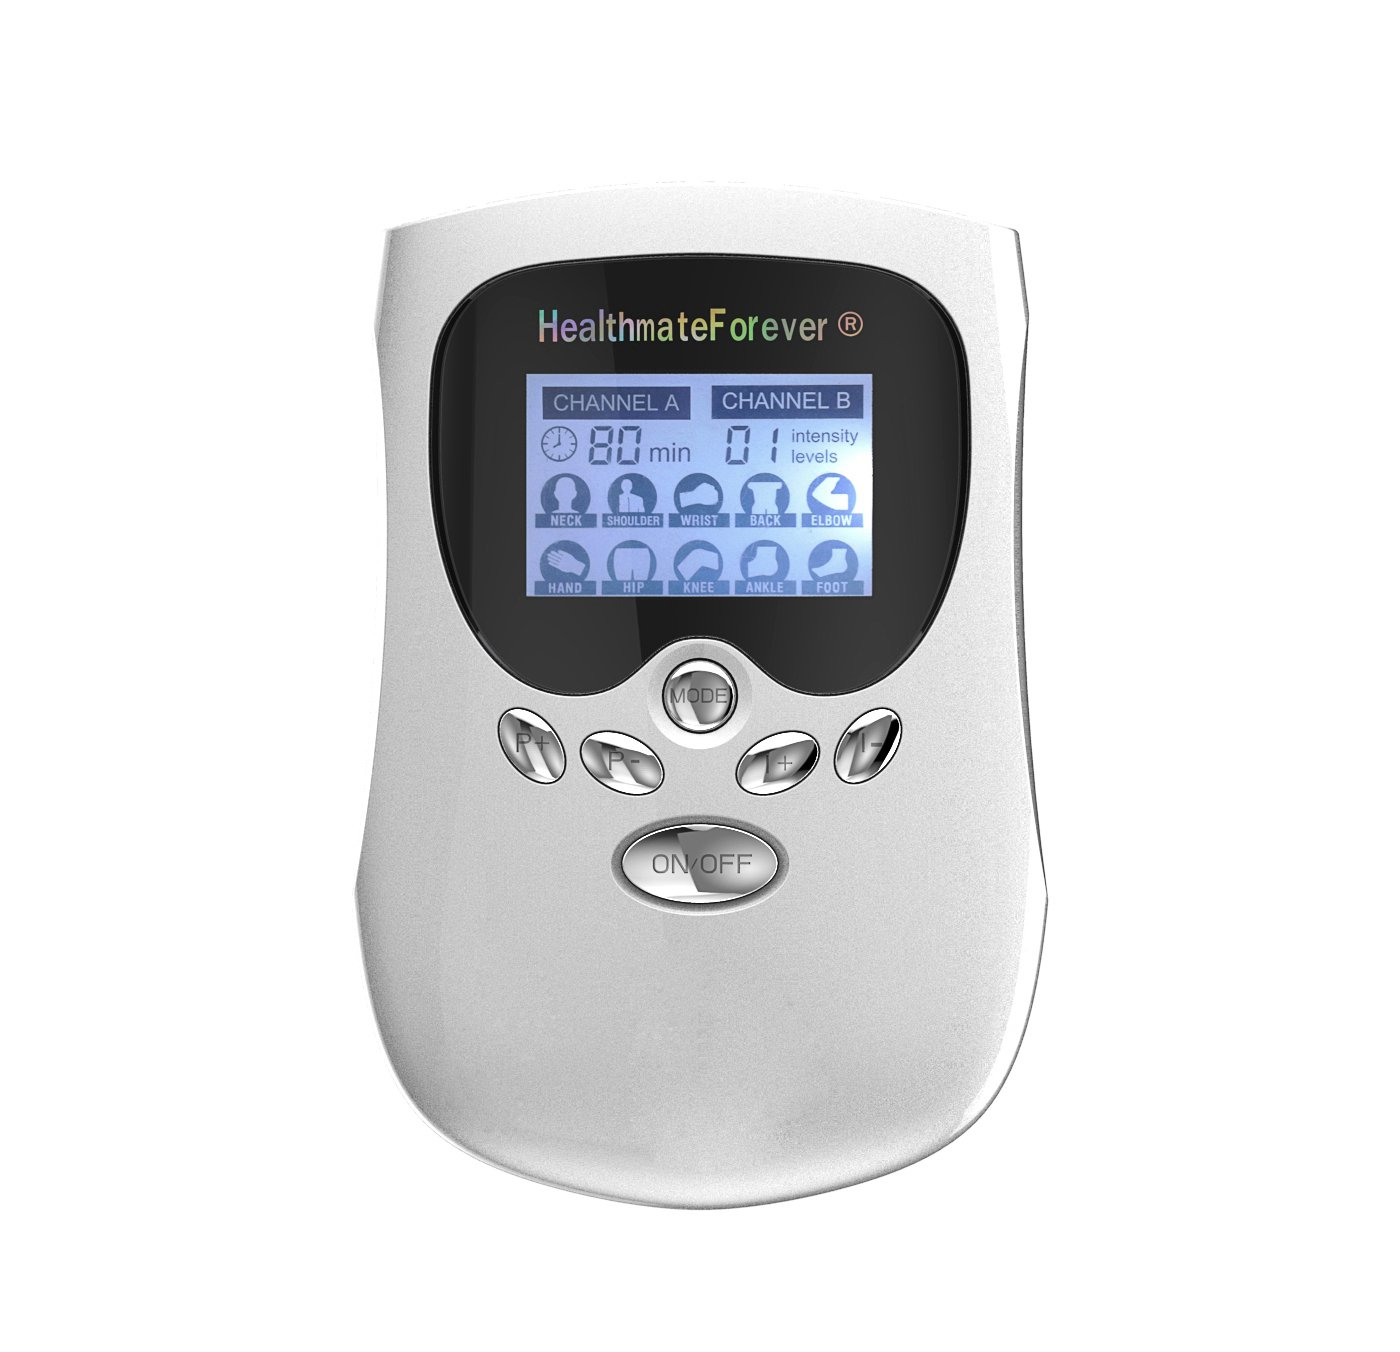 PM10AB HealthmateForever TENS Unit Electrical Muscle Stimulator White + 5 Pairs of Pads